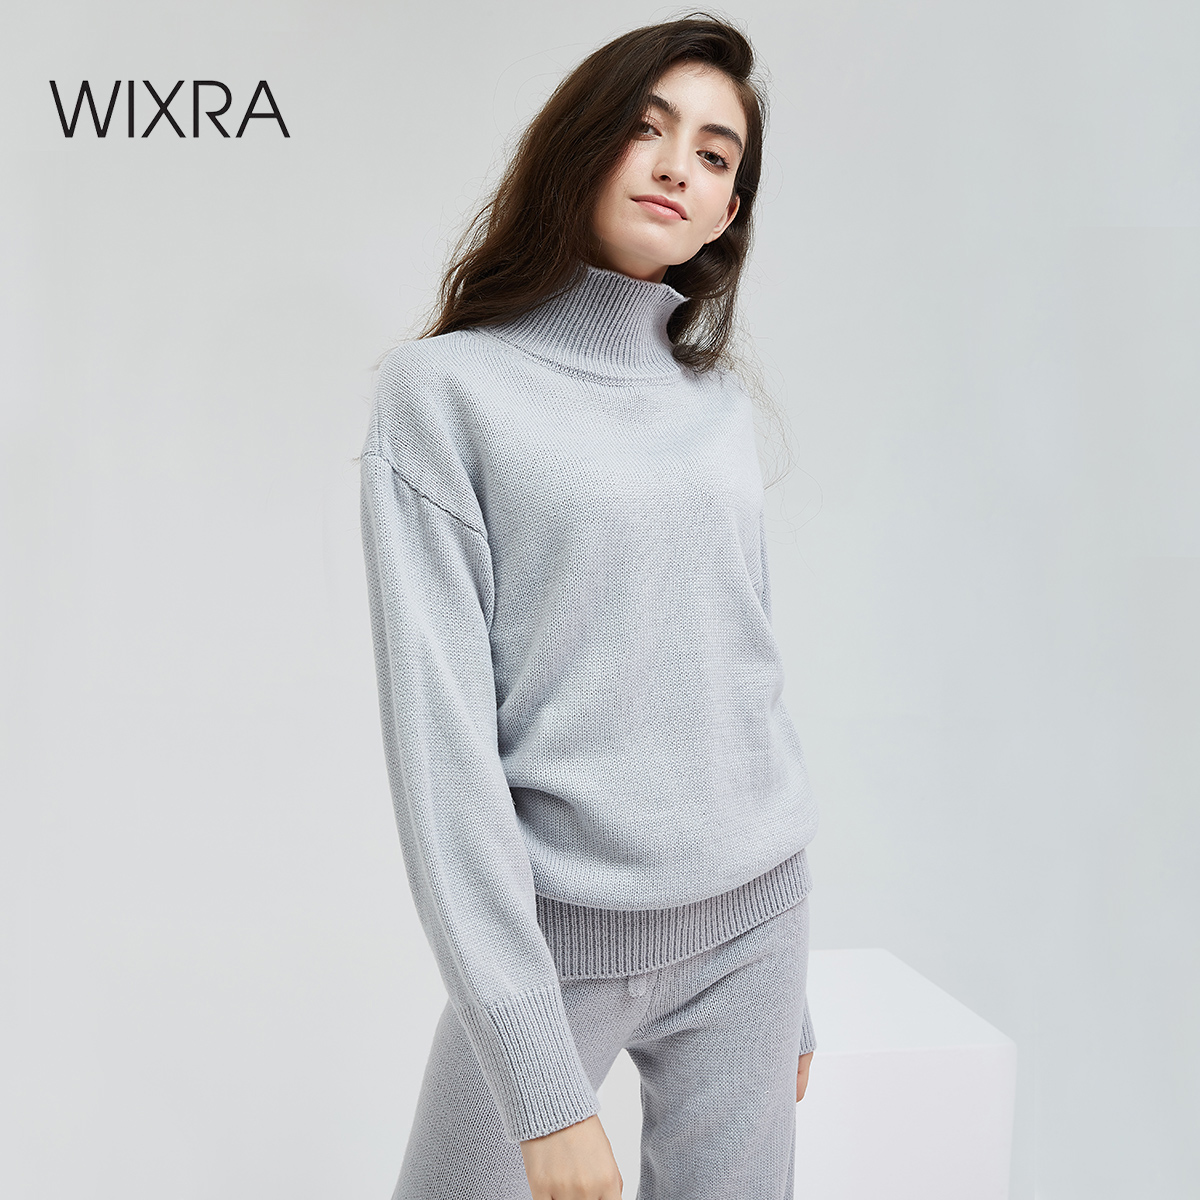 Wixra Casual Women's Sweater Suits And Sets Autumn Winter Turtleneck Long Sleeve Sweaters Tops+Long Trousers Solid 2 Piece Sets